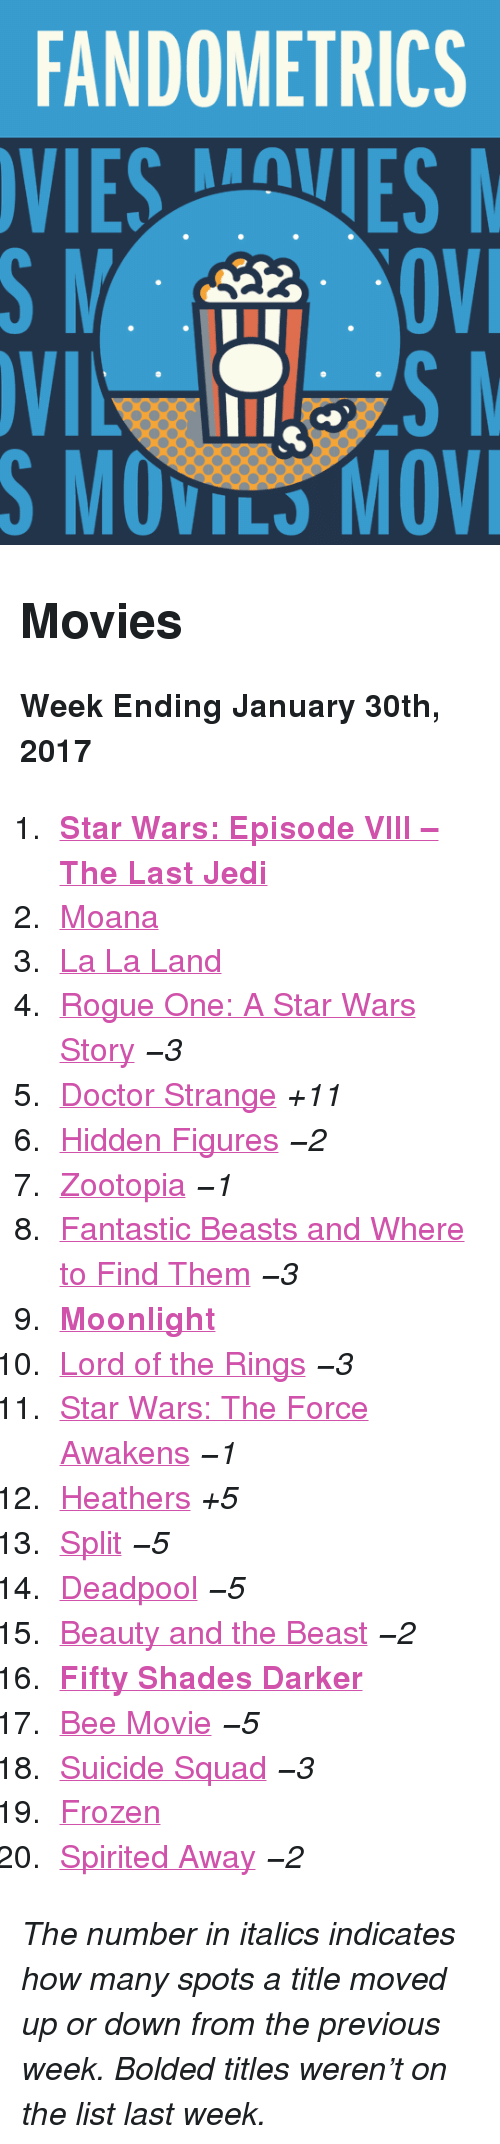 """Star Wars: The Force Awakens: FANDOMETRICS  VIESVES  S MOVILS MOV <h2>Movies</h2><p><b>Week Ending January 30th, 2017</b></p><ol><li><a href=""""http://www.tumblr.com/search/the%20last%20jedi""""><b>Star Wars: Episode VIII – The Last Jedi</b></a></li>  <li><a href=""""http://www.tumblr.com/search/moana"""">Moana</a></li>  <li><a href=""""http://www.tumblr.com/search/la%20la%20land"""">La La Land</a></li>  <li><a href=""""http://www.tumblr.com/search/rogue%20one"""">Rogue One: A Star Wars Story</a><i>−3</i></li>  <li><a href=""""http://www.tumblr.com/search/doctor%20strange"""">Doctor Strange</a><i>+11</i></li>  <li><a href=""""http://www.tumblr.com/search/hidden%20figures"""">Hidden Figures</a><i>−2</i></li>  <li><a href=""""http://www.tumblr.com/search/zootopia"""">Zootopia</a><i>−1</i></li>  <li><a href=""""http://www.tumblr.com/search/fantastic%20beasts%20and%20where%20to%20find%20them"""">Fantastic Beasts and Where to Find Them</a><i>−3</i></li>  <li><a href=""""http://www.tumblr.com/search/moonlight""""><b>Moonlight</b></a></li>  <li><a href=""""http://www.tumblr.com/search/lotr"""">Lord of the Rings</a><i>−3</i></li>  <li><a href=""""http://www.tumblr.com/search/the%20force%20awakens"""">Star Wars: The Force Awakens</a><i>−1</i></li>  <li><a href=""""http://www.tumblr.com/search/heathers"""">Heathers</a><i>+5</i></li>  <li><a href=""""http://www.tumblr.com/search/split"""">Split</a><i>−5</i></li>  <li><a href=""""http://www.tumblr.com/search/deadpool"""">Deadpool</a><i>−5</i></li>  <li><a href=""""http://www.tumblr.com/search/beauty%20and%20the%20beast"""">Beauty and the Beast</a><i>−2</i></li>  <li><a href=""""http://www.tumblr.com/search/fifty%20shades%20darker""""><b>Fifty Shades Darker</b></a></li>  <li><a href=""""http://www.tumblr.com/search/bee%20movie"""">Bee Movie</a><i>−5</i></li>  <li><a href=""""http://www.tumblr.com/search/suicide%20squad"""">Suicide Squad</a><i>−3</i></li>  <li><a href=""""http://www.tumblr.com/search/frozen"""">Frozen</a></li>  <li><a href=""""http://www.tumblr.com/search/spirited%20away"""">Spirited Away</a><i>−2</i></li></ol><p><i>The number in"""